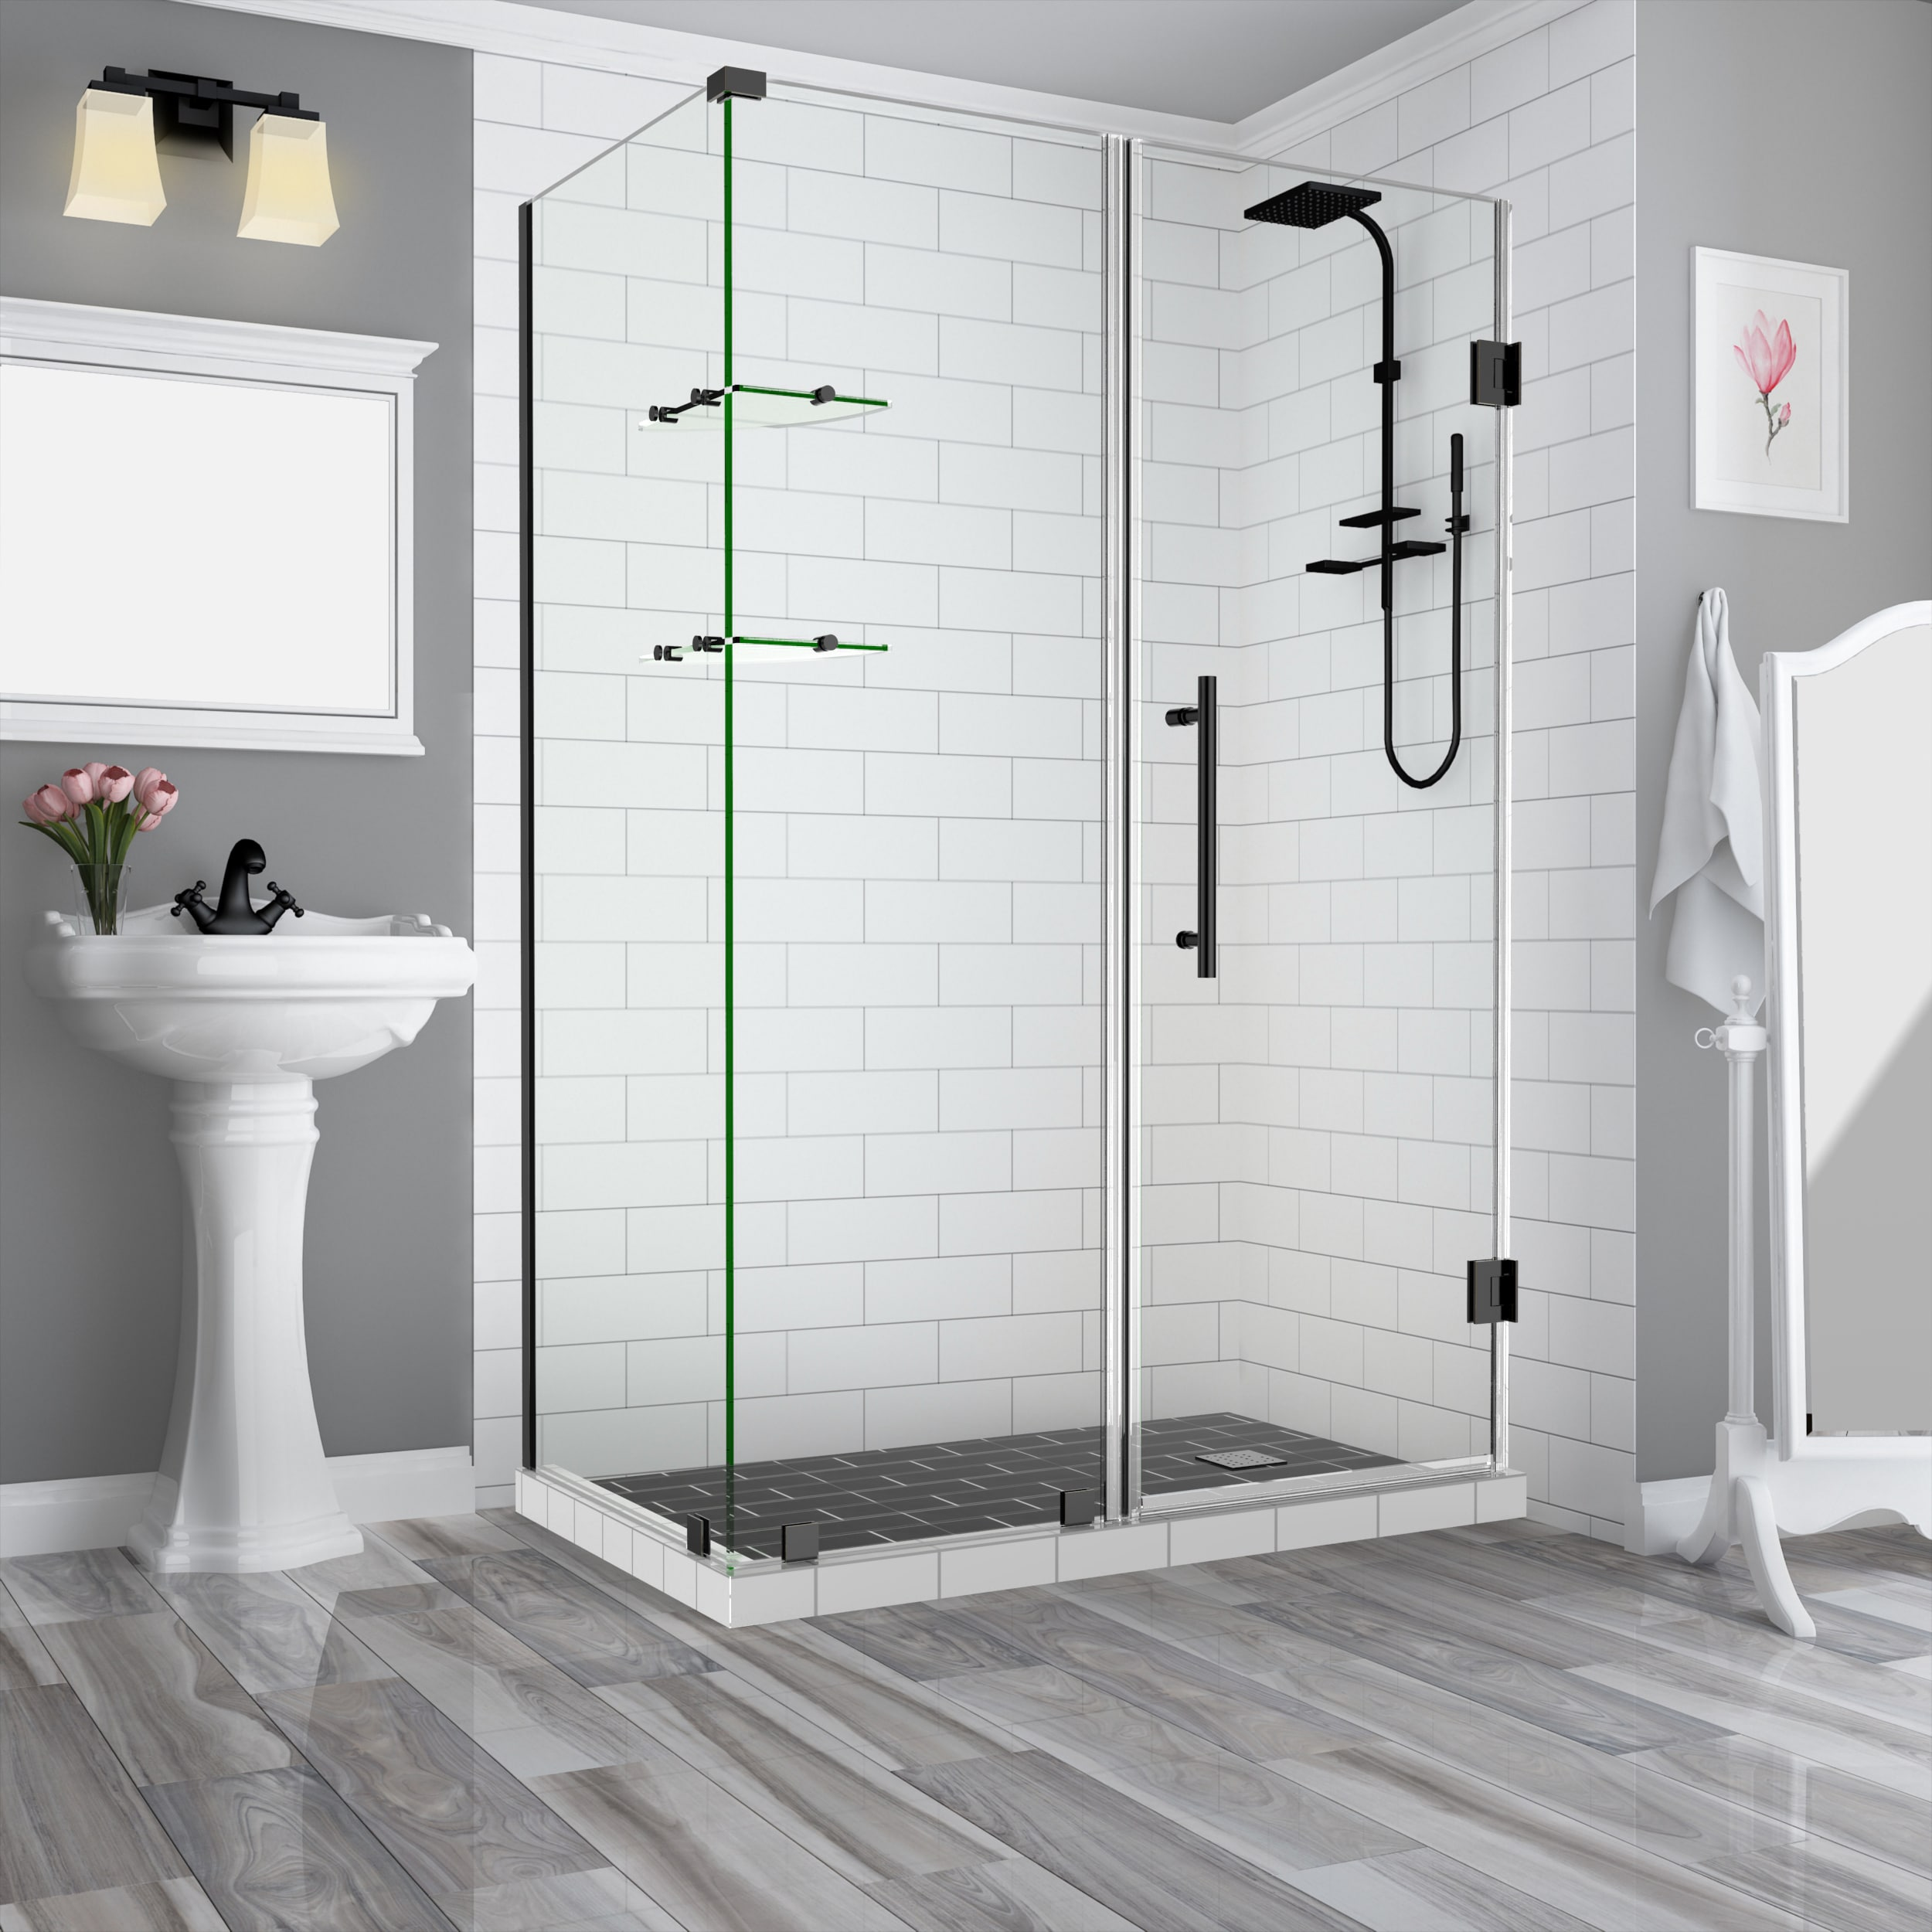 Aston Sen962ez Orb 602630 10 Oil Rubbed Bronze Bromley Gs 72 High X 60 Wide X 30 Deep Hinged Frameless Shower Enclosure With 26 Door Width And Clear Glass Faucet Com